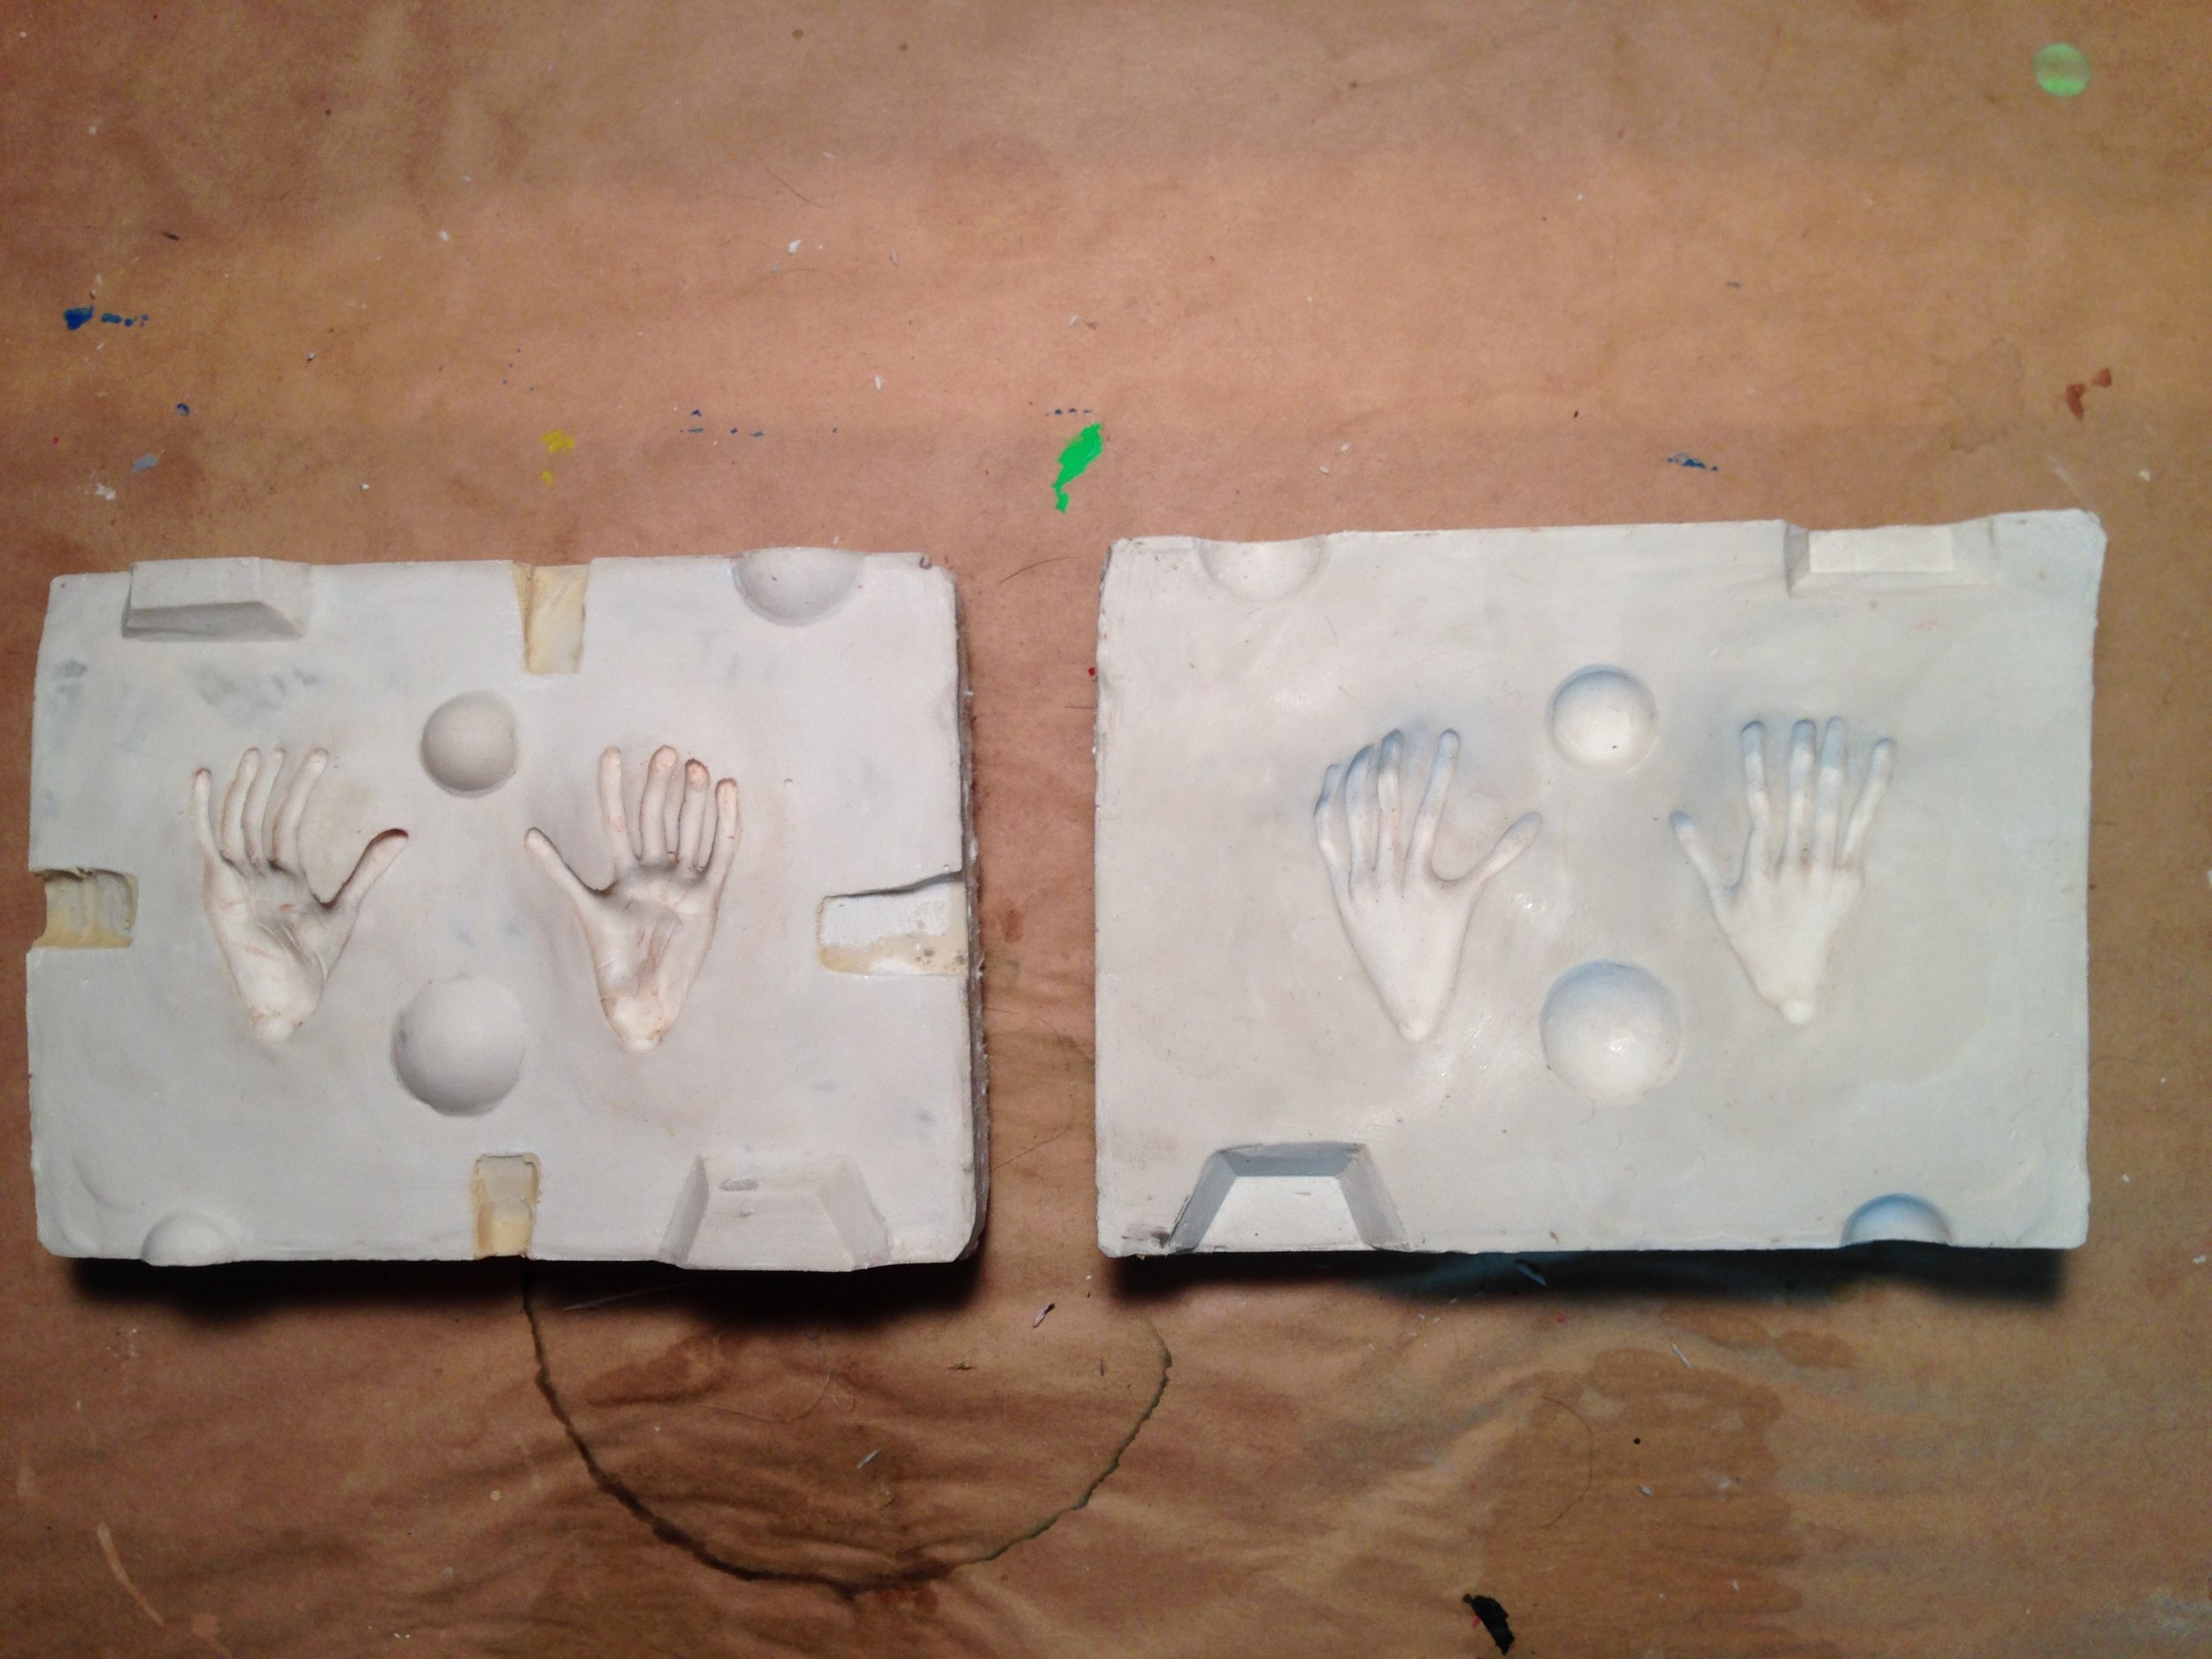 Molds for casting silicone lemur feet.